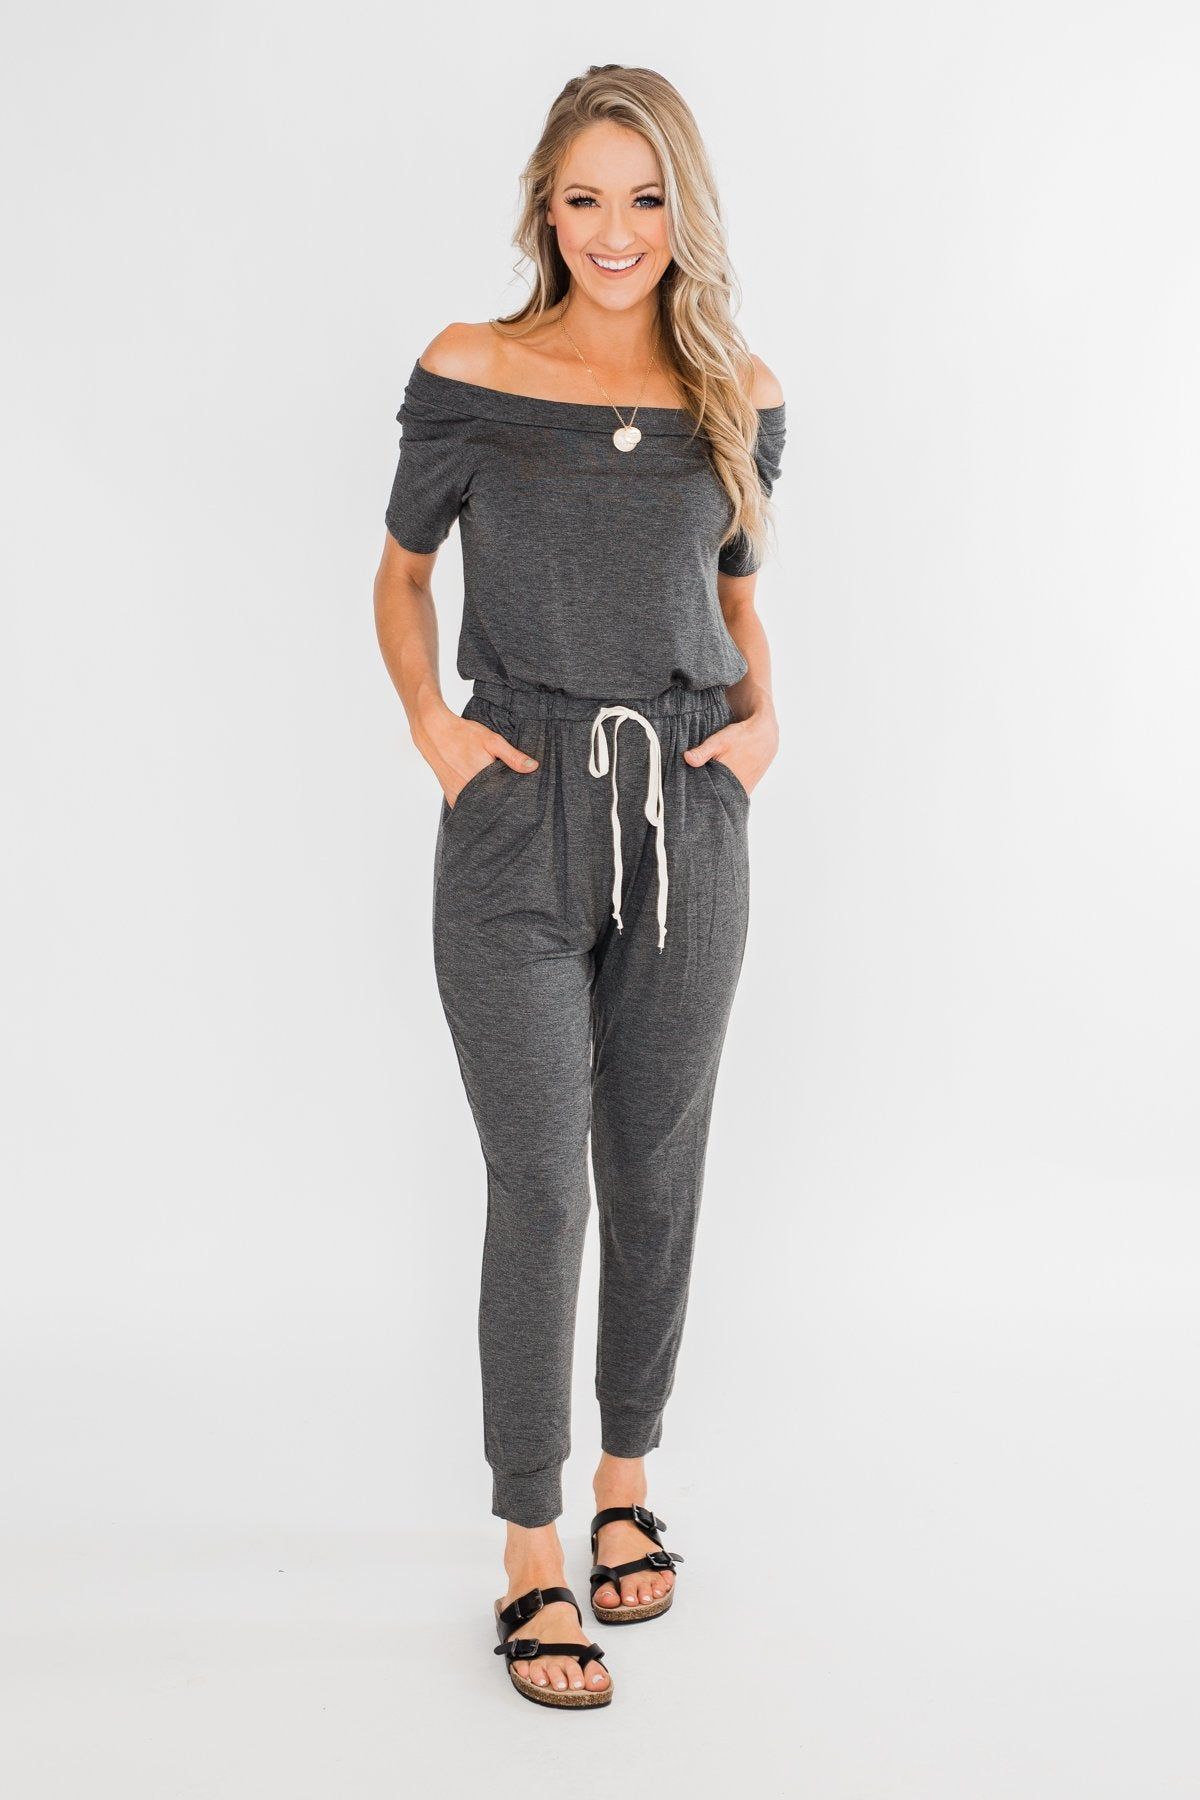 Living My Life Drawstring Jogger Jumpsuit- Charcoal